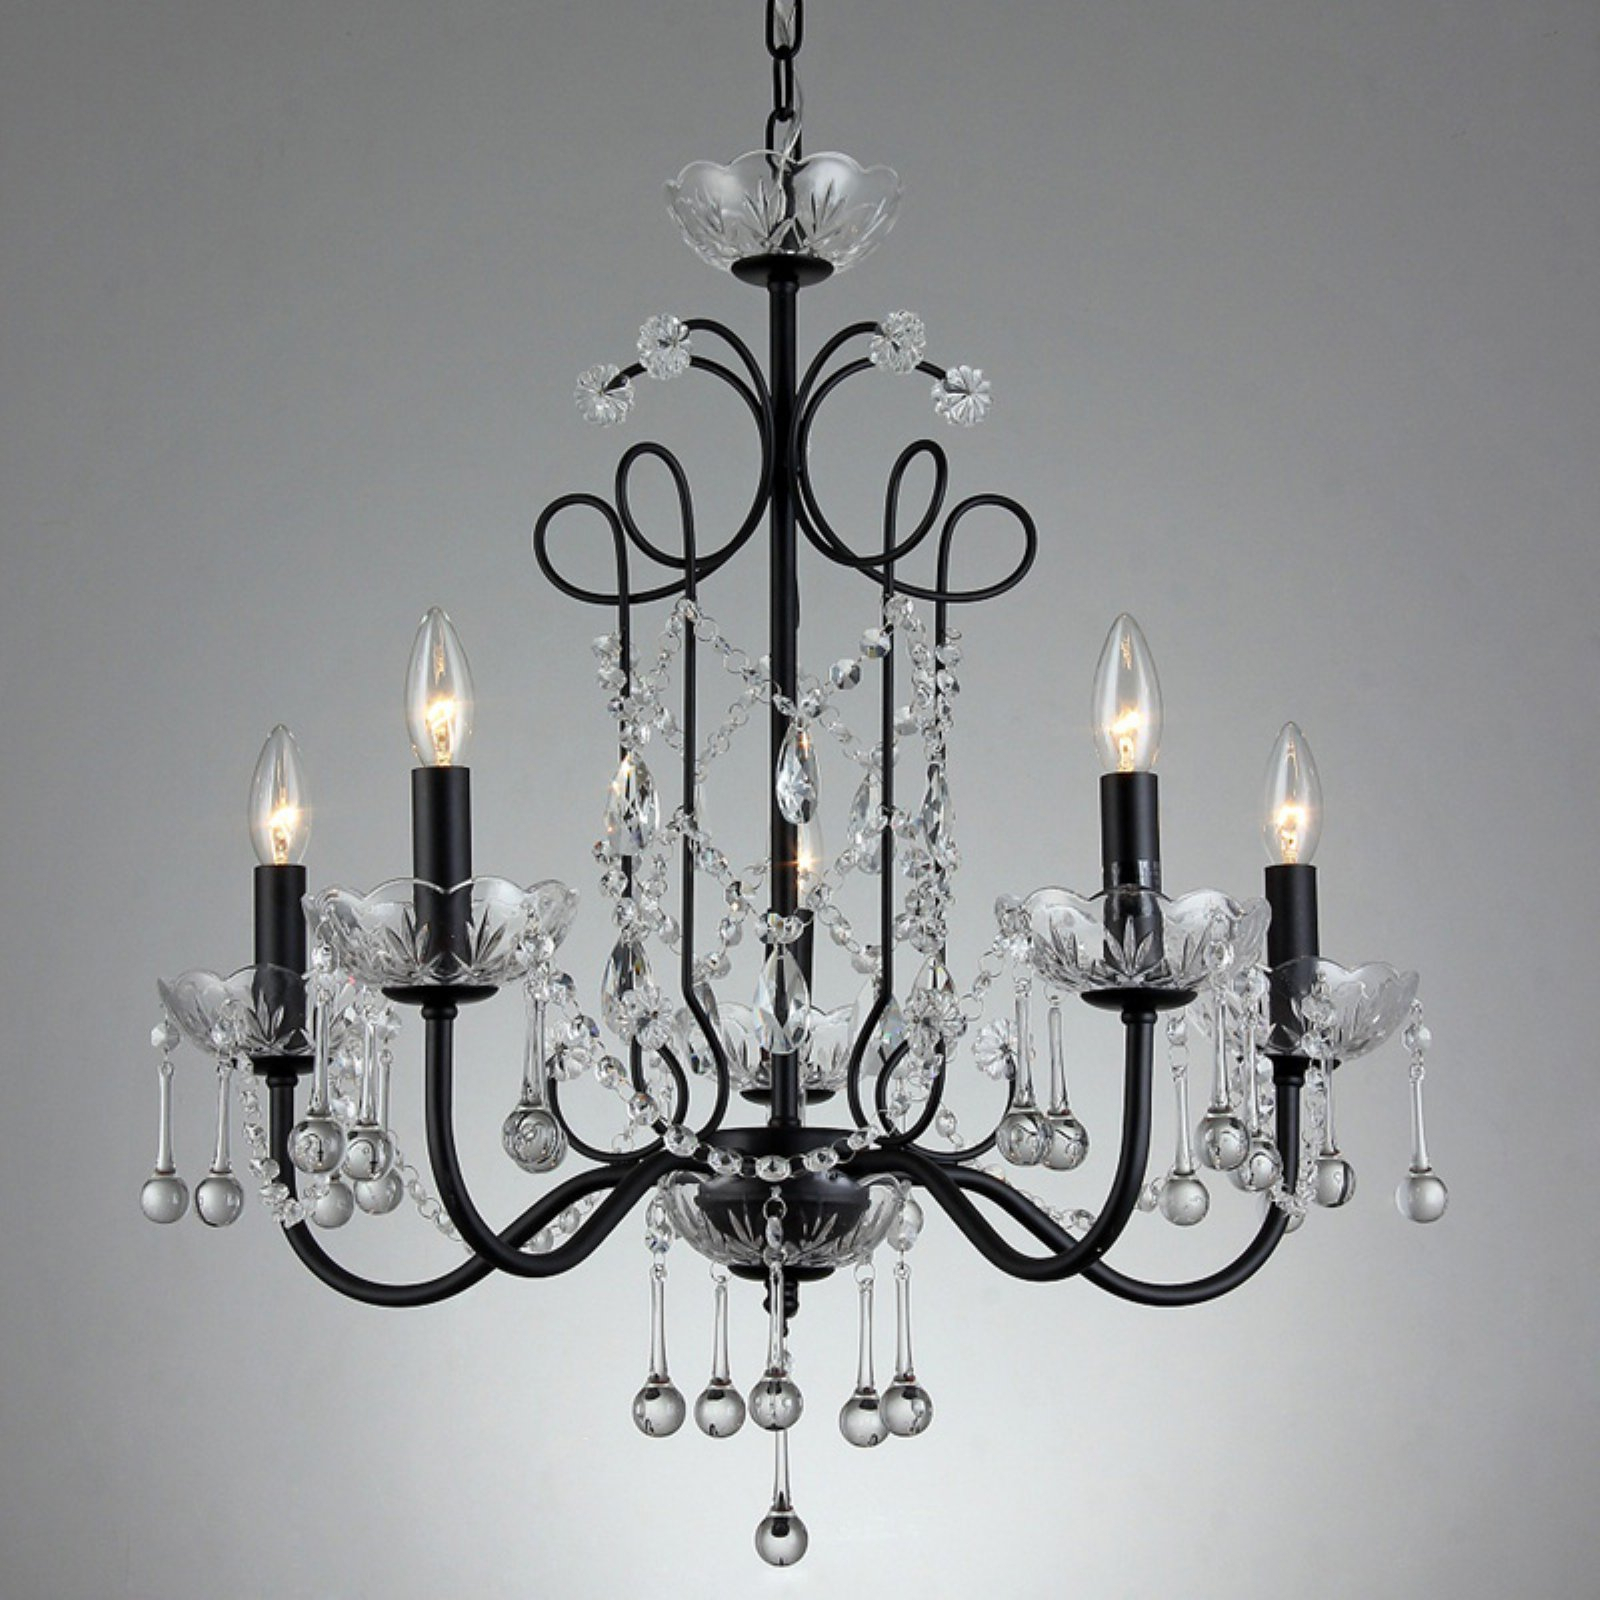 Warehouse Of Tiffany Donna Su7201-5 Chandelier | Products In in Shaylee 5-Light Candle Style Chandeliers (Image 29 of 30)